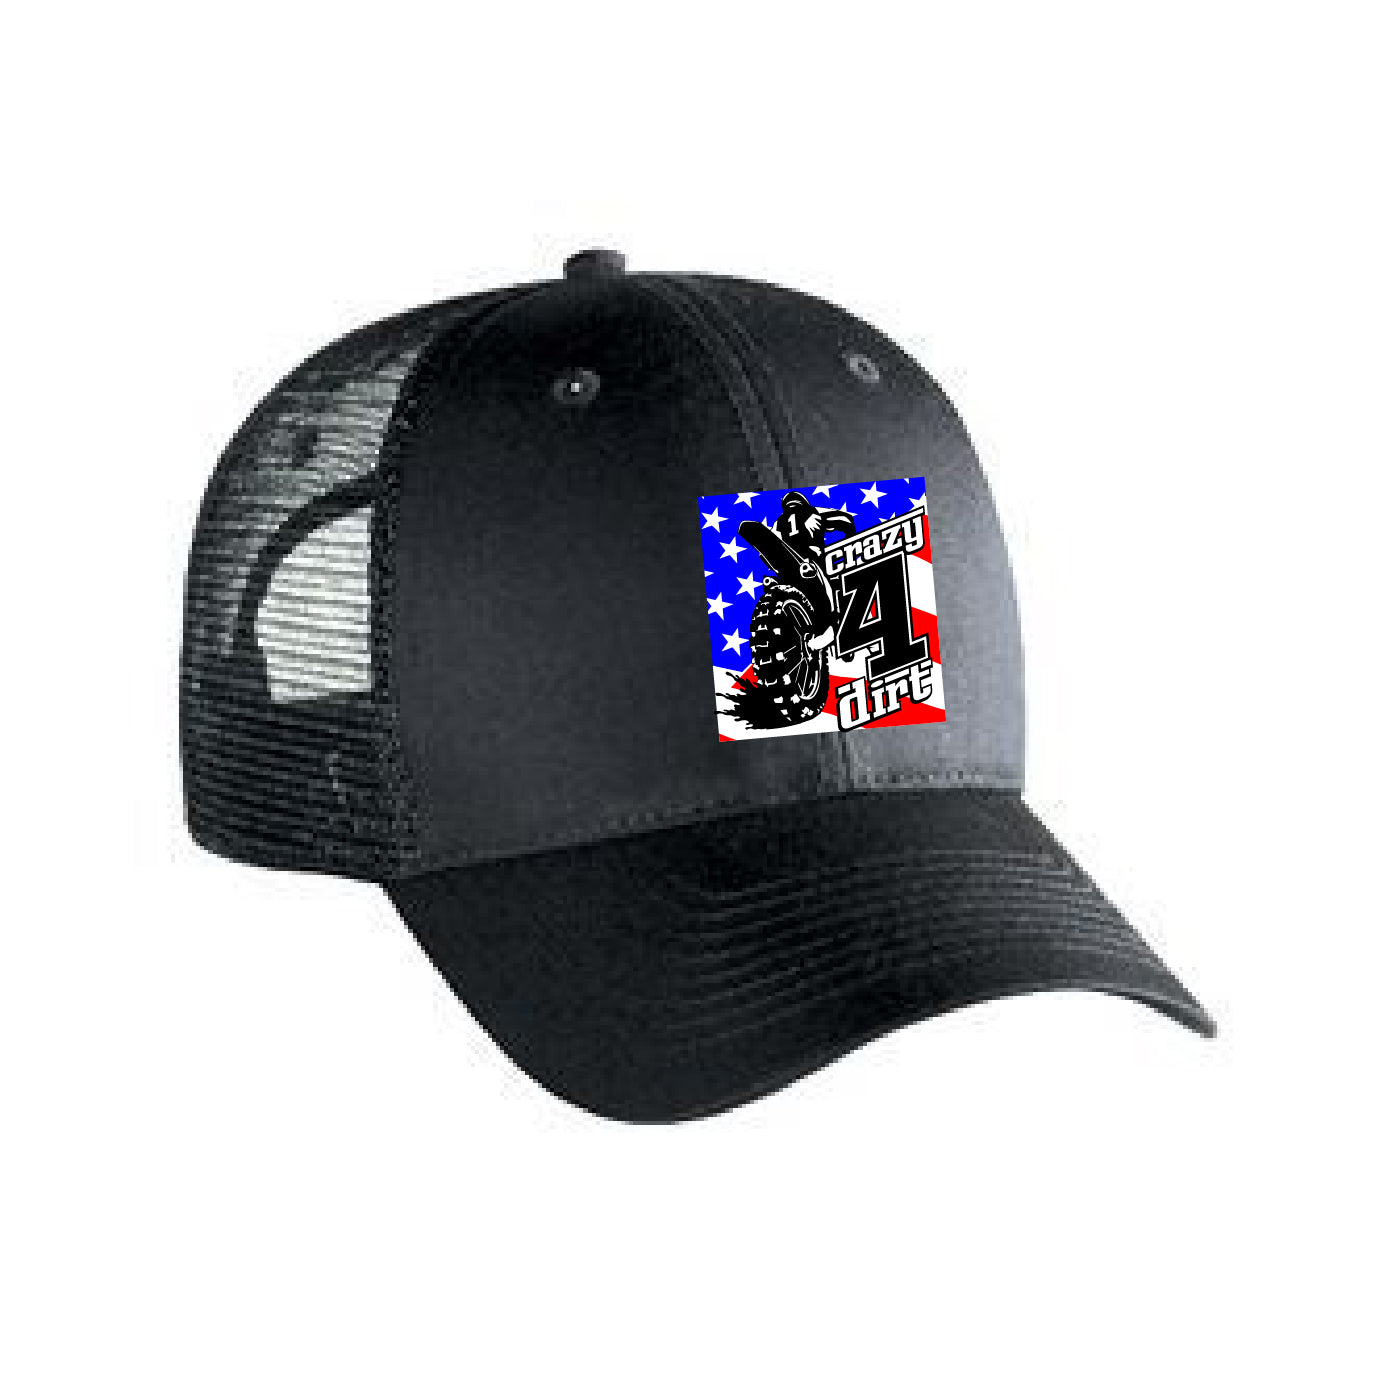 Crazy4Dirt Trucker Cap - Black/Black